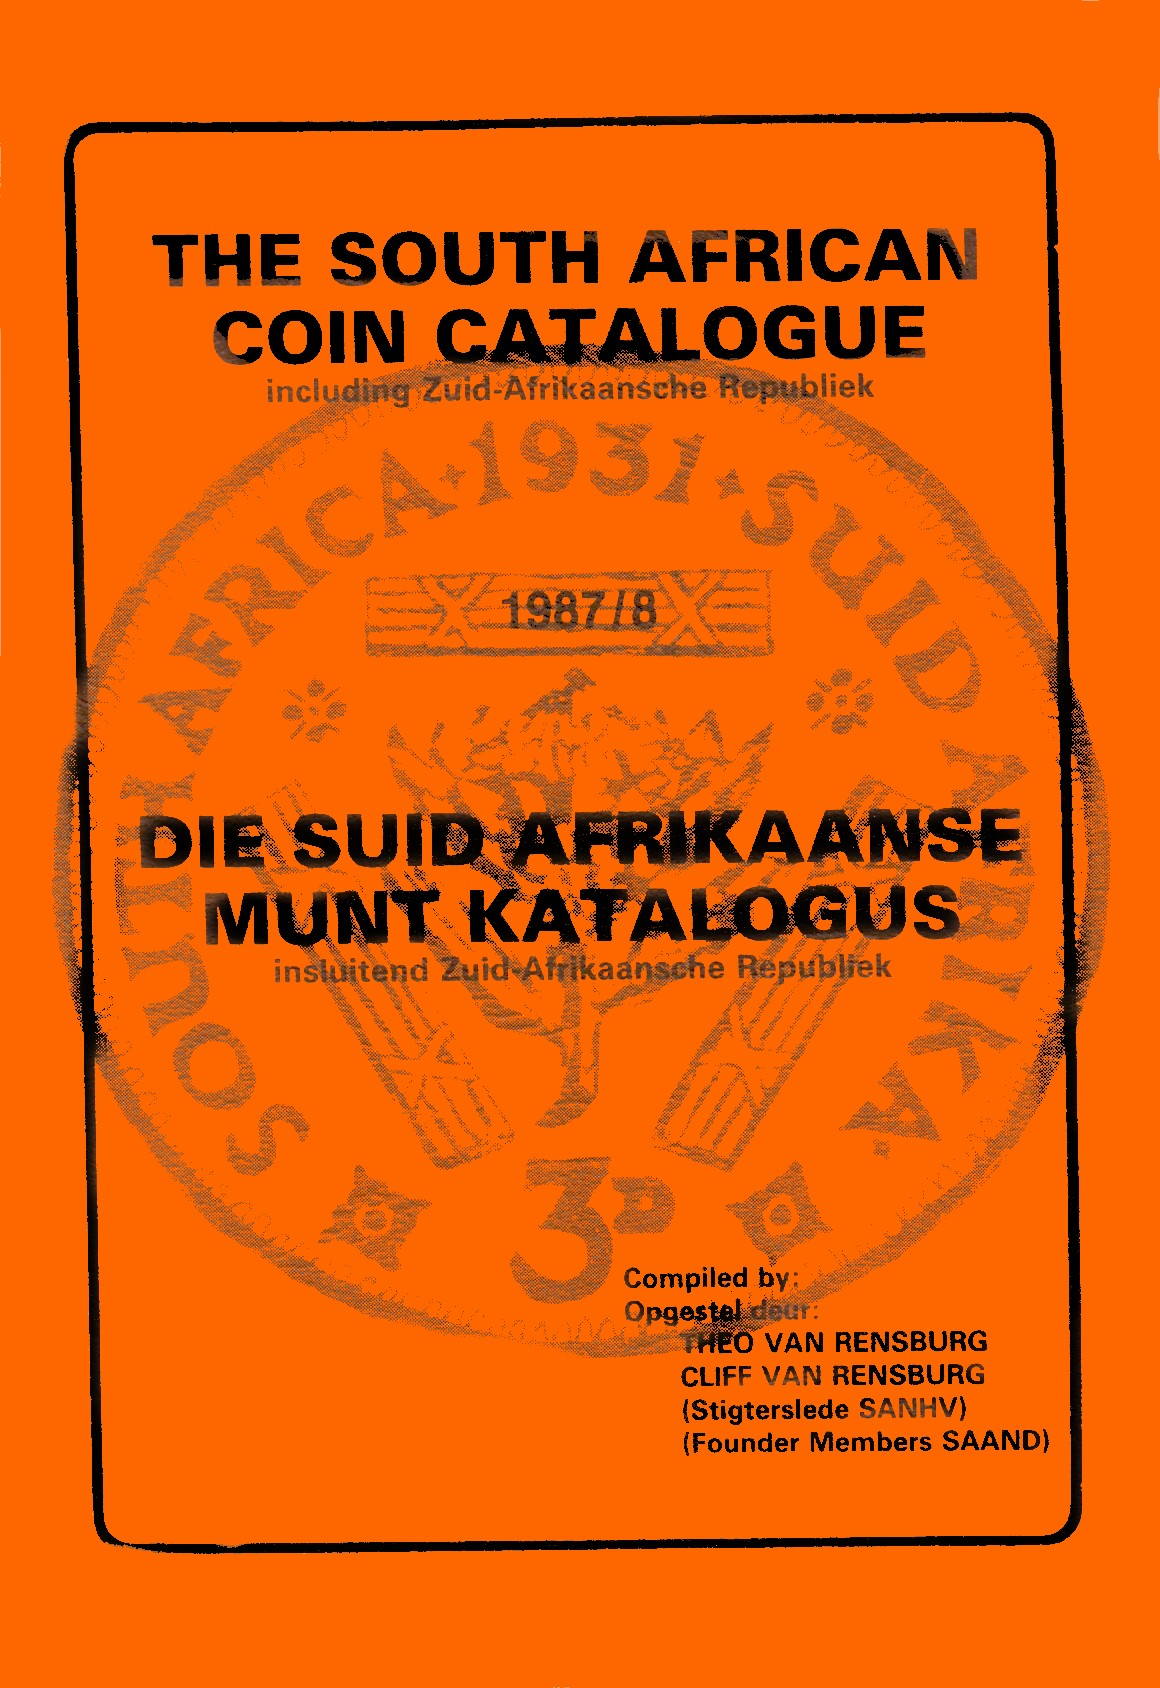 Randburg Coin Catalogue 1987 to 1988